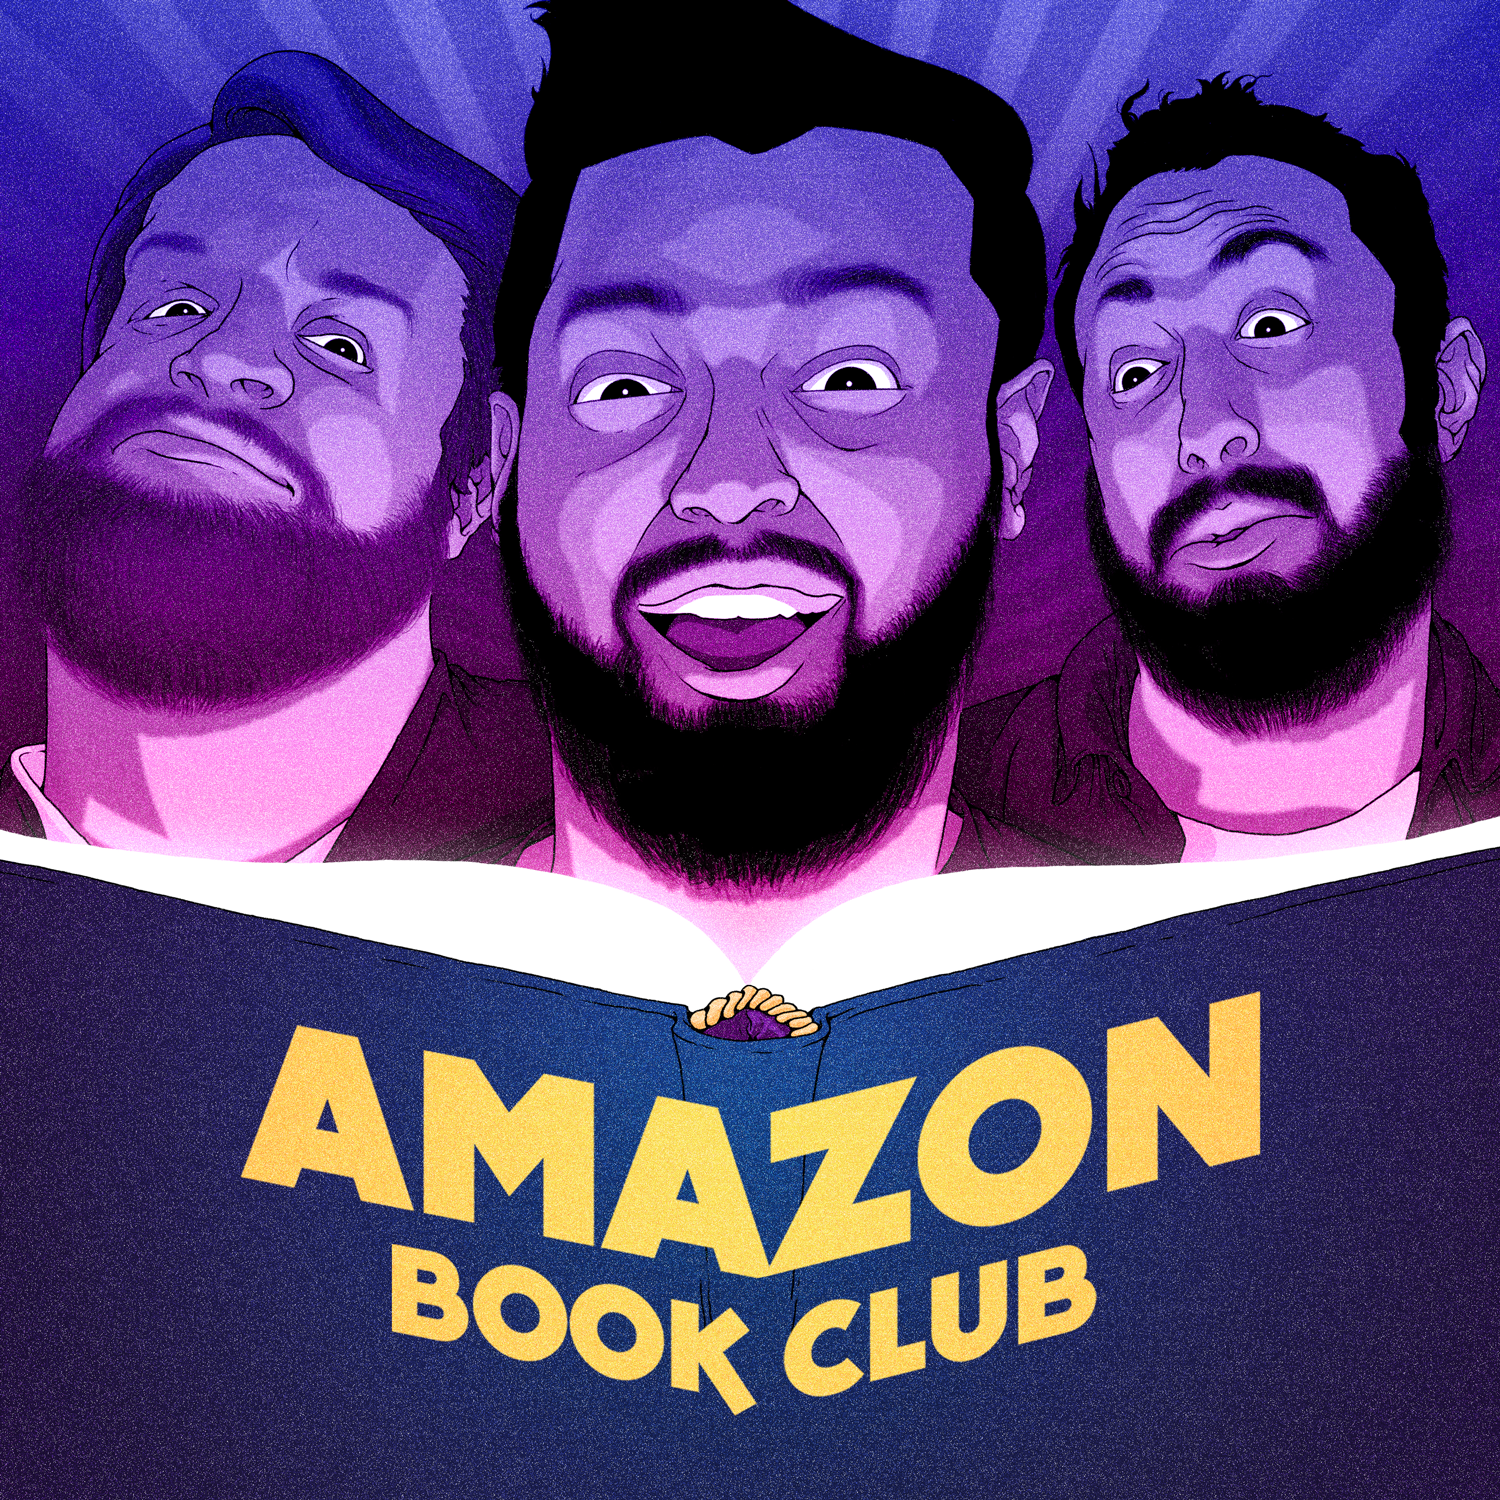 AMAZON BOOK CLUB